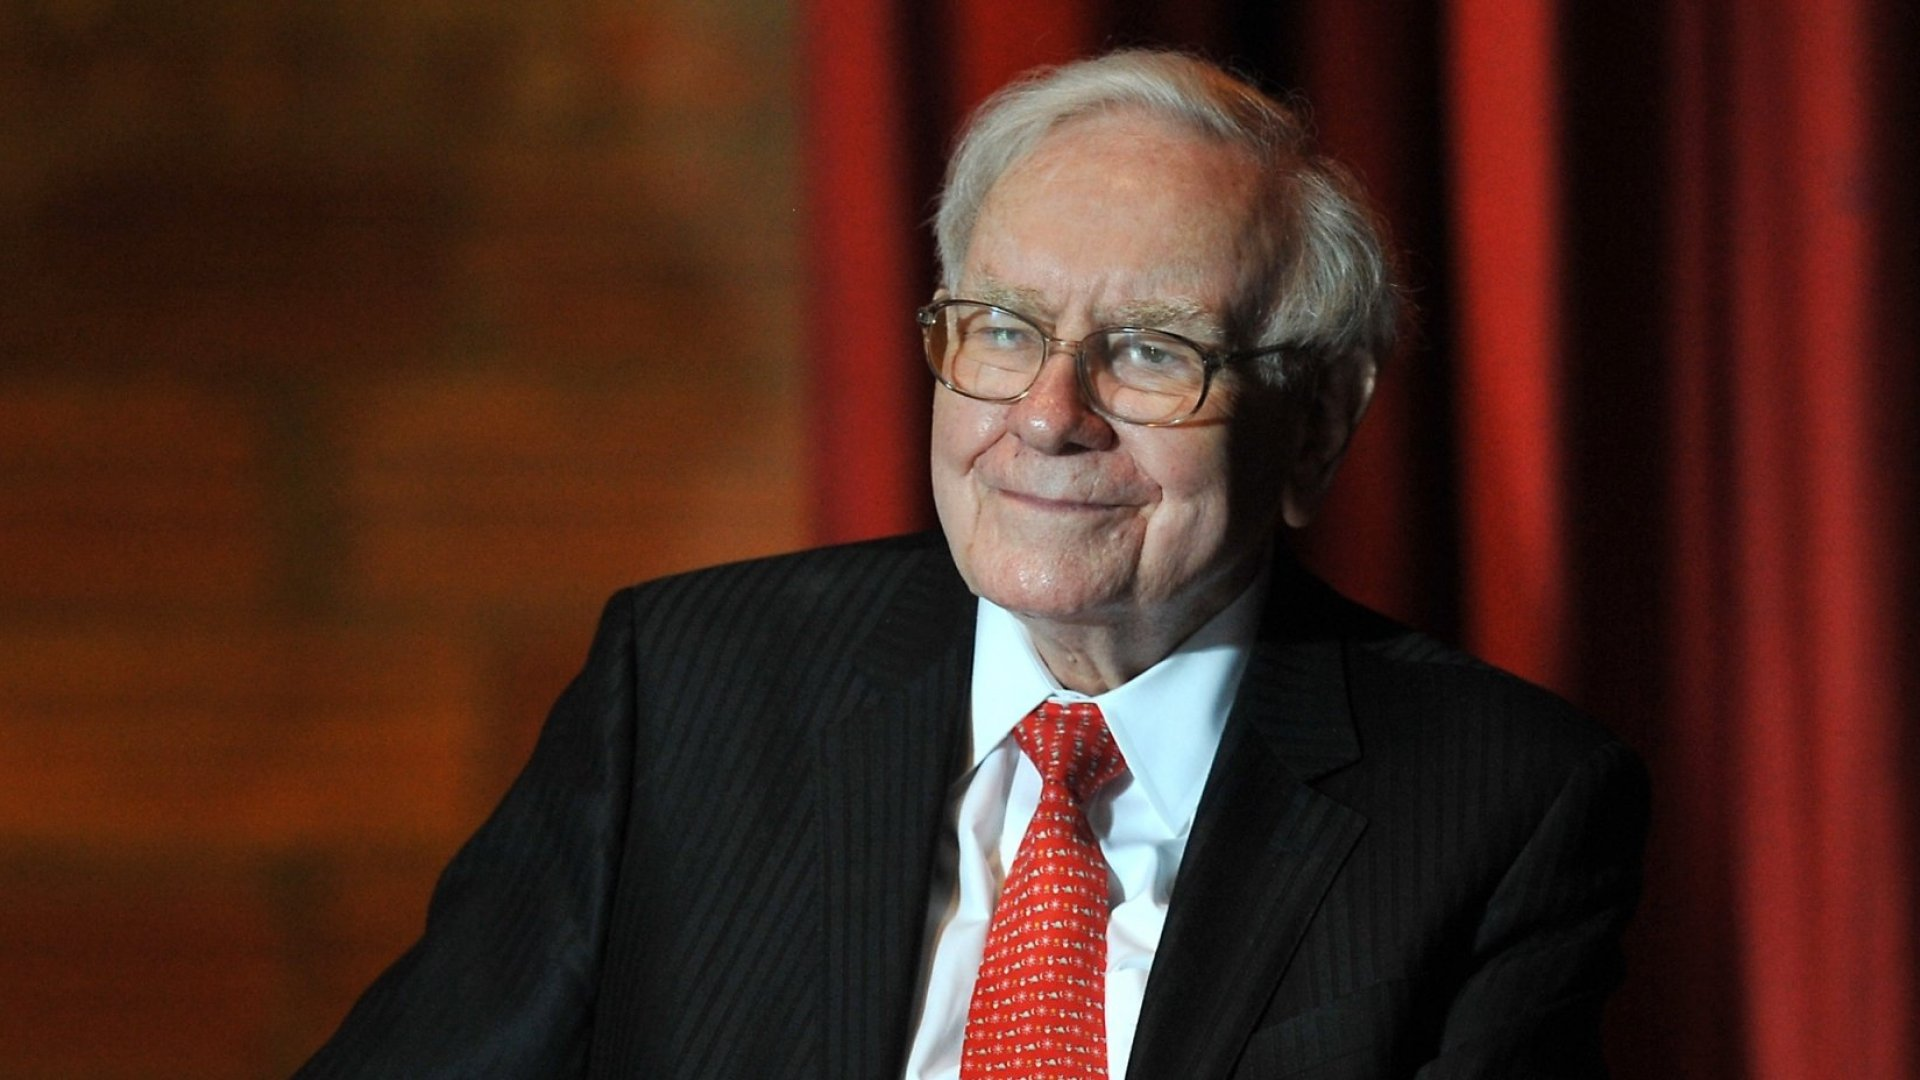 Warren Buffett's Brilliant 25/5 Rule Was Fake. Here's What He Really Said About Achieving Success